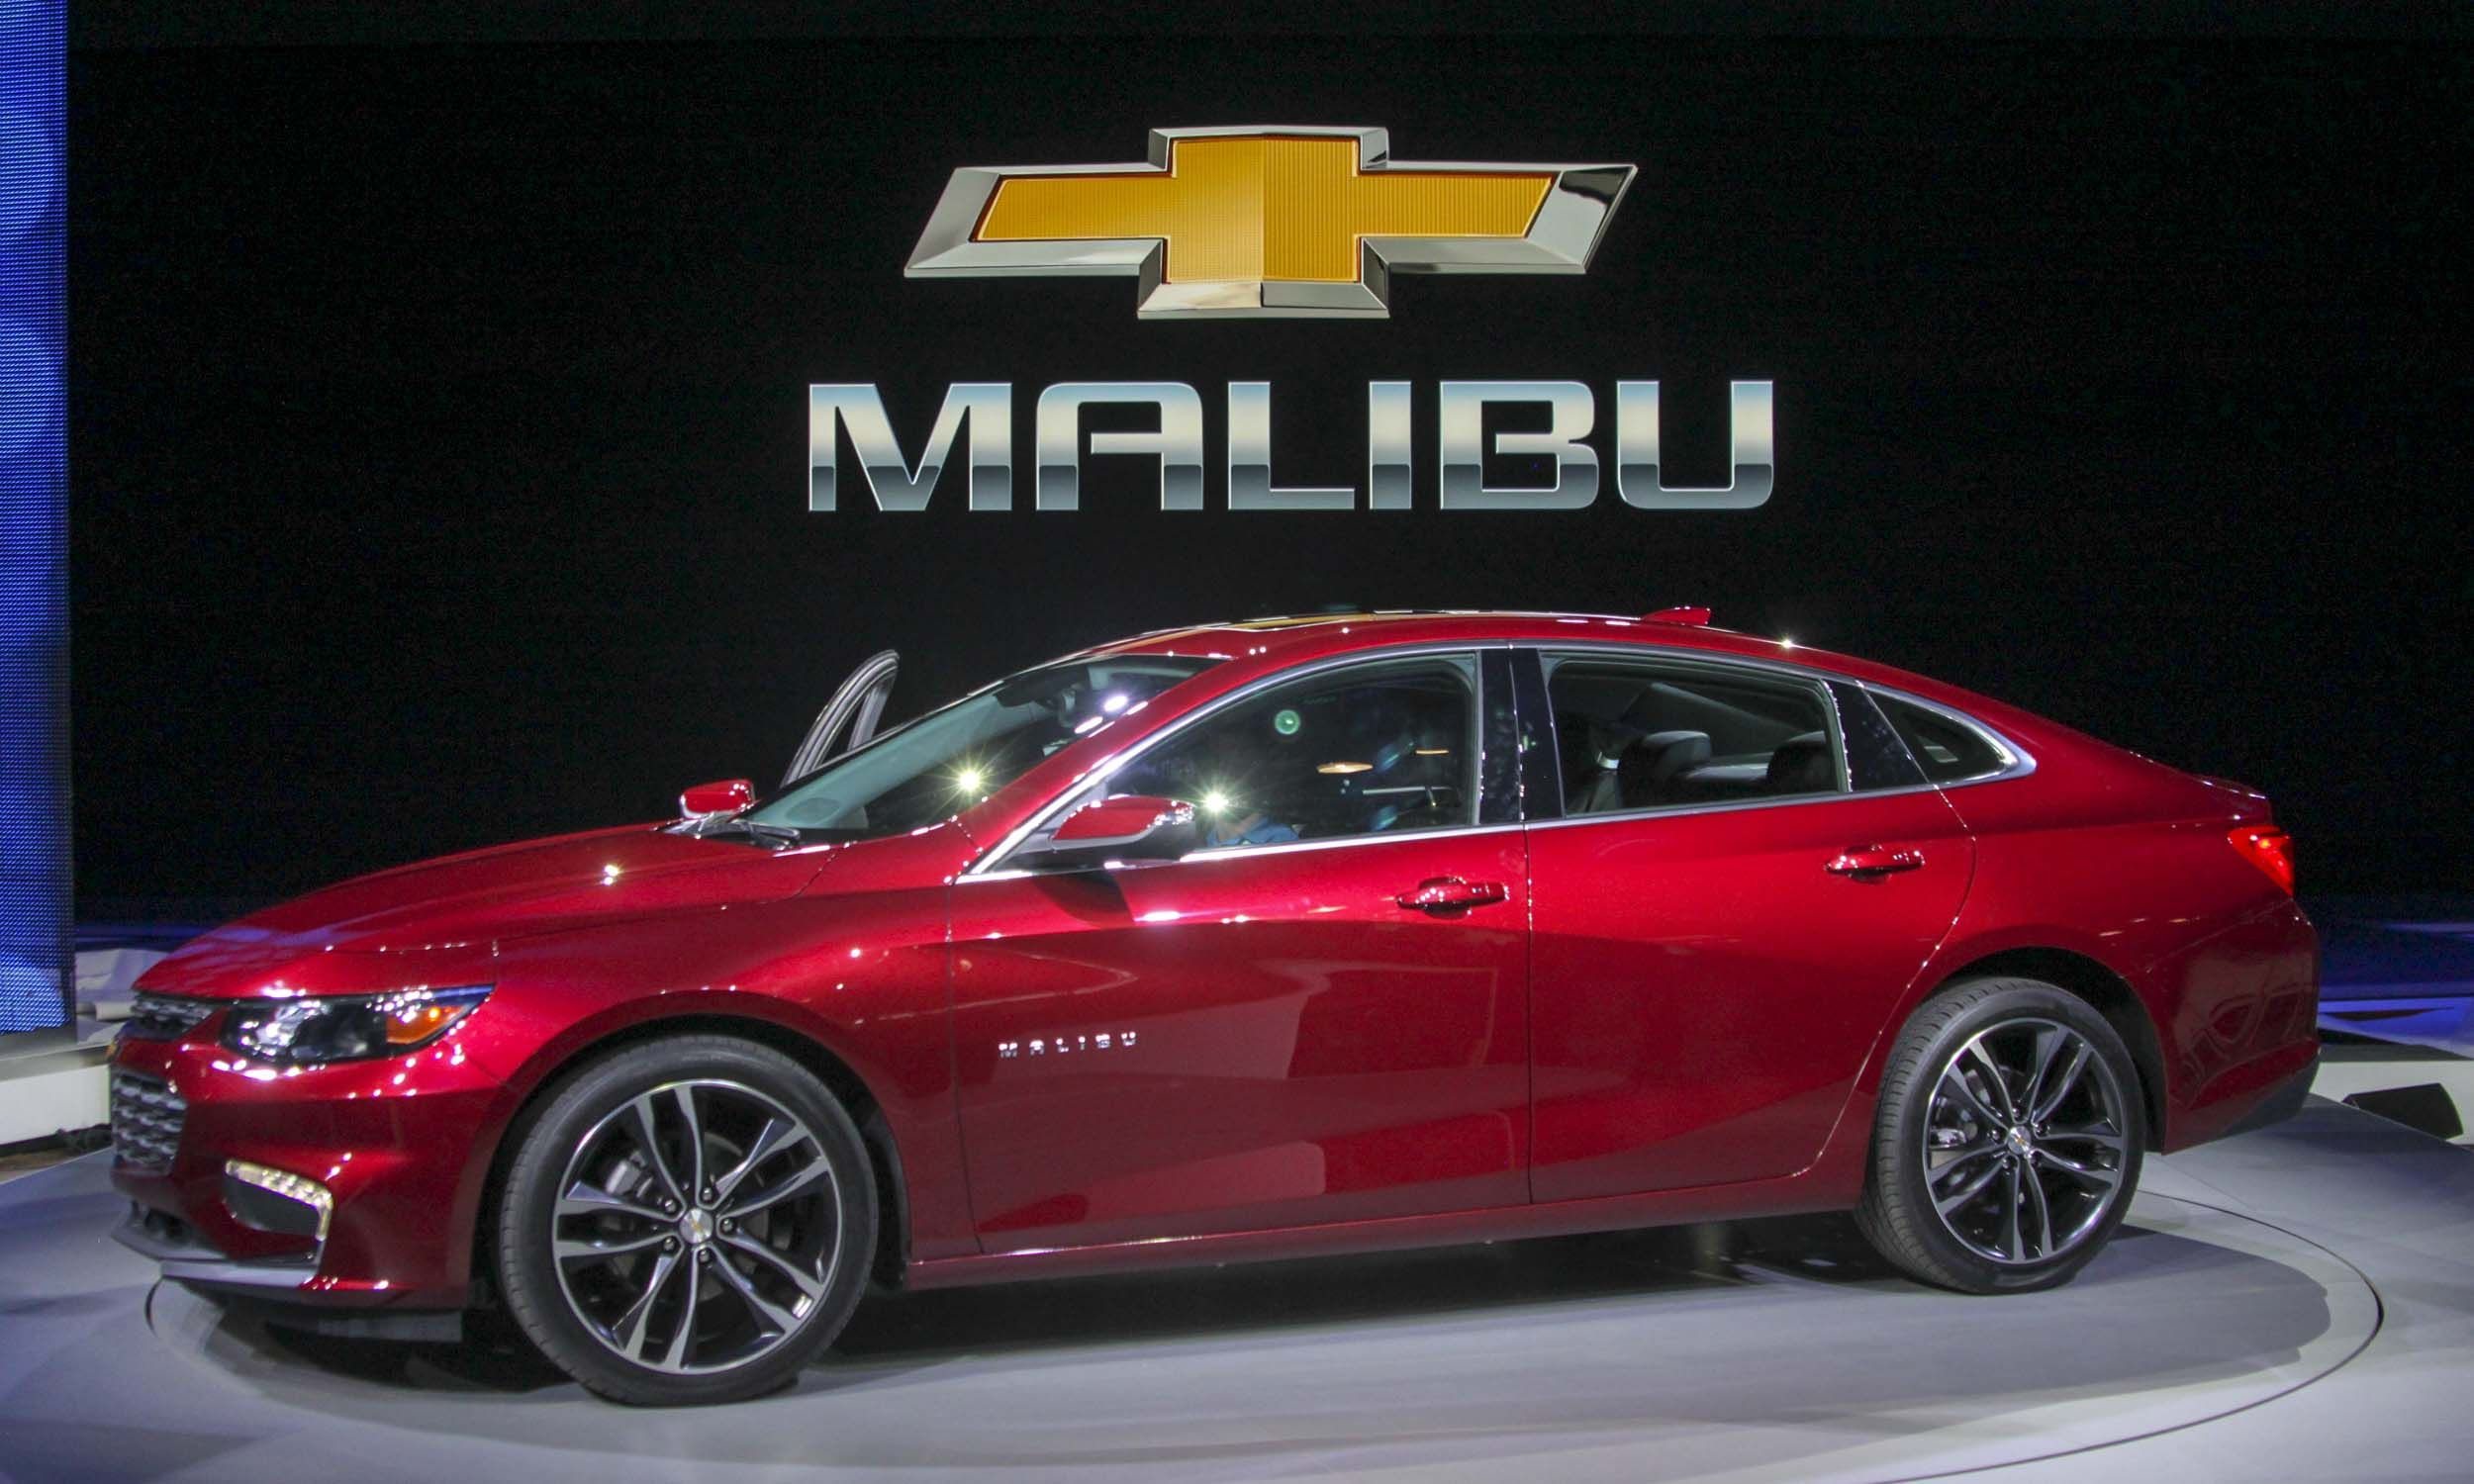 All roads lead to malibu the first malibu joined the chevrolet lineup more than 50 years ago in 1964 as the top line version of the chevrolet chevelle